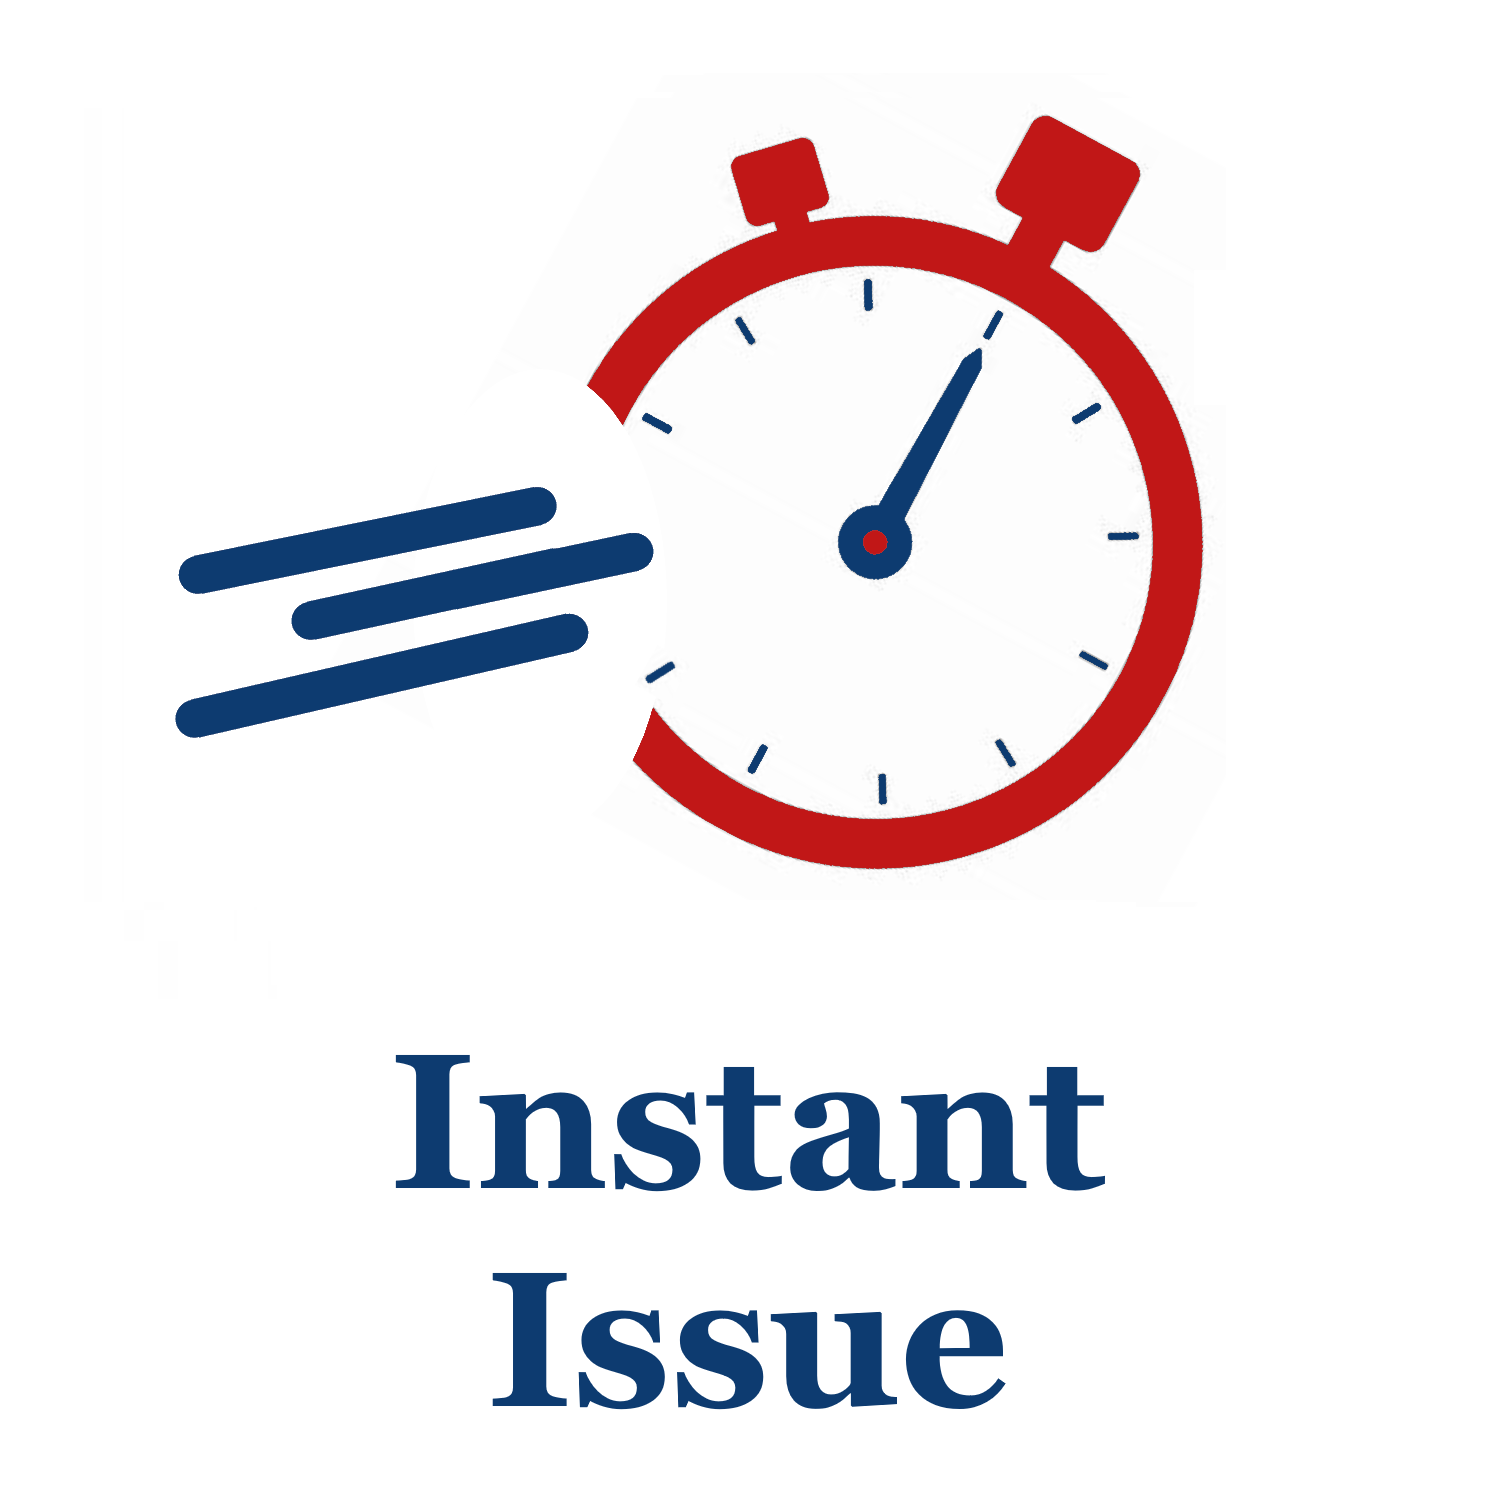 instant issue